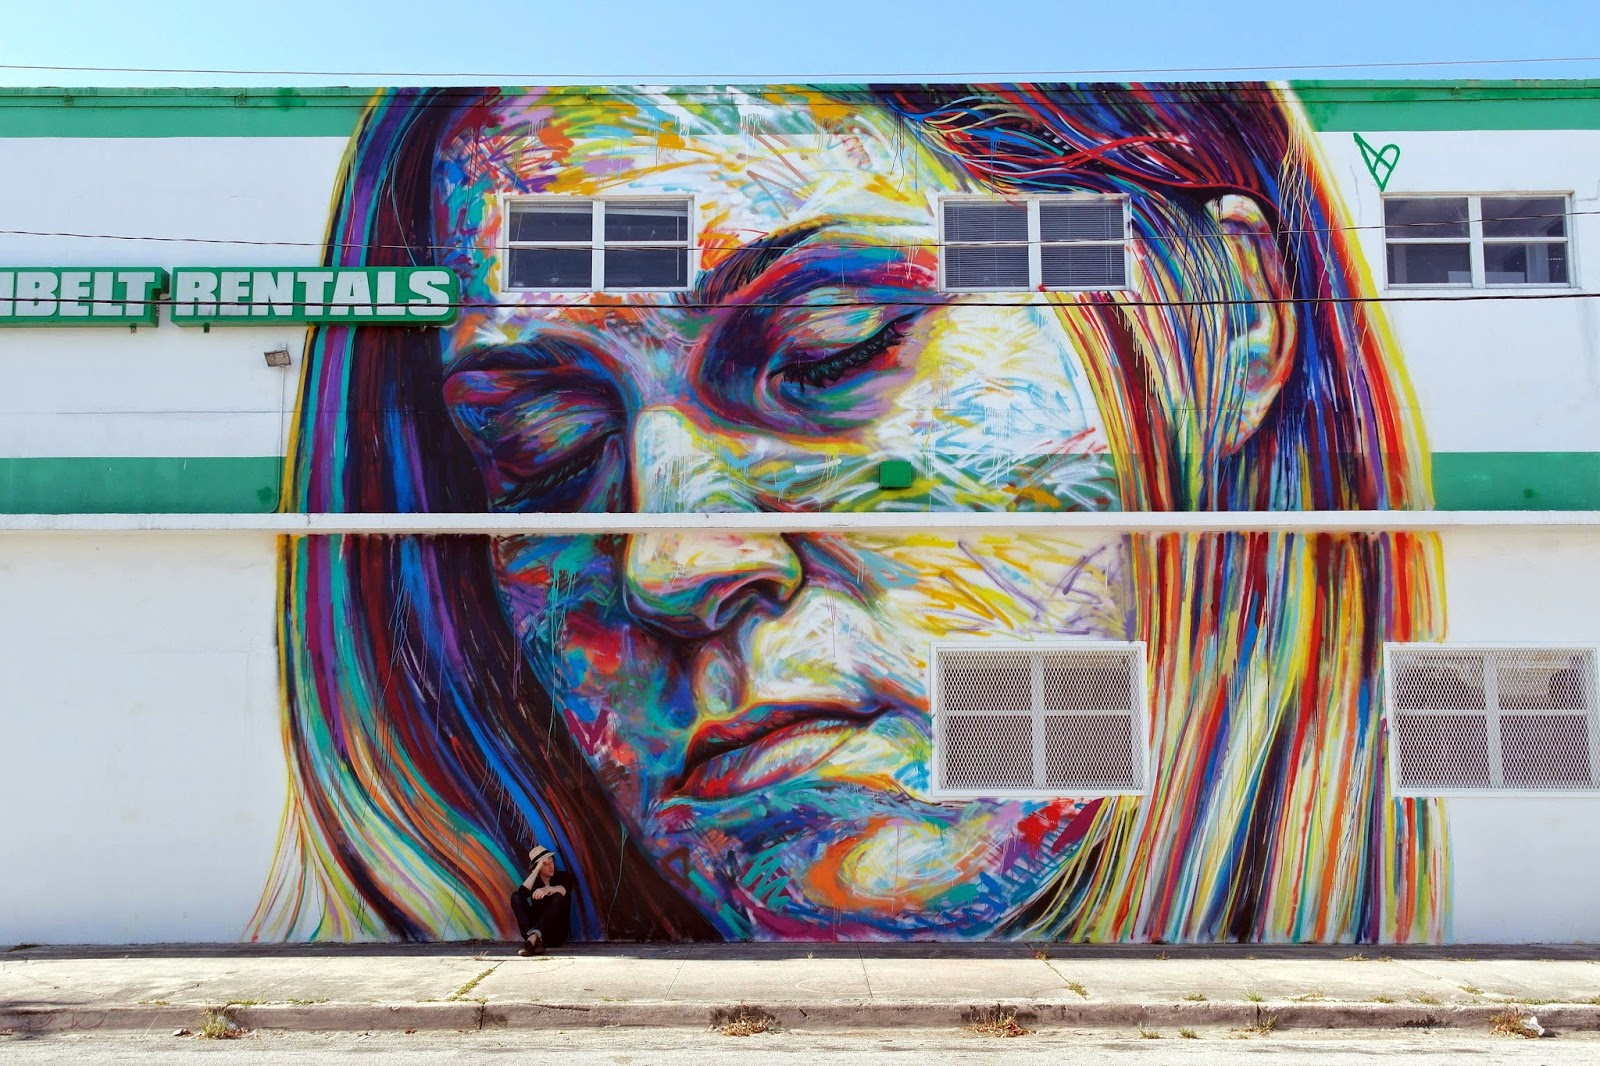 Our friend David Walker is currently in Miami, USA where he just finished working on this street art mural and for the upcoming opening of his solo exhibition at Robert Fontaine Gallery in Wywnood.